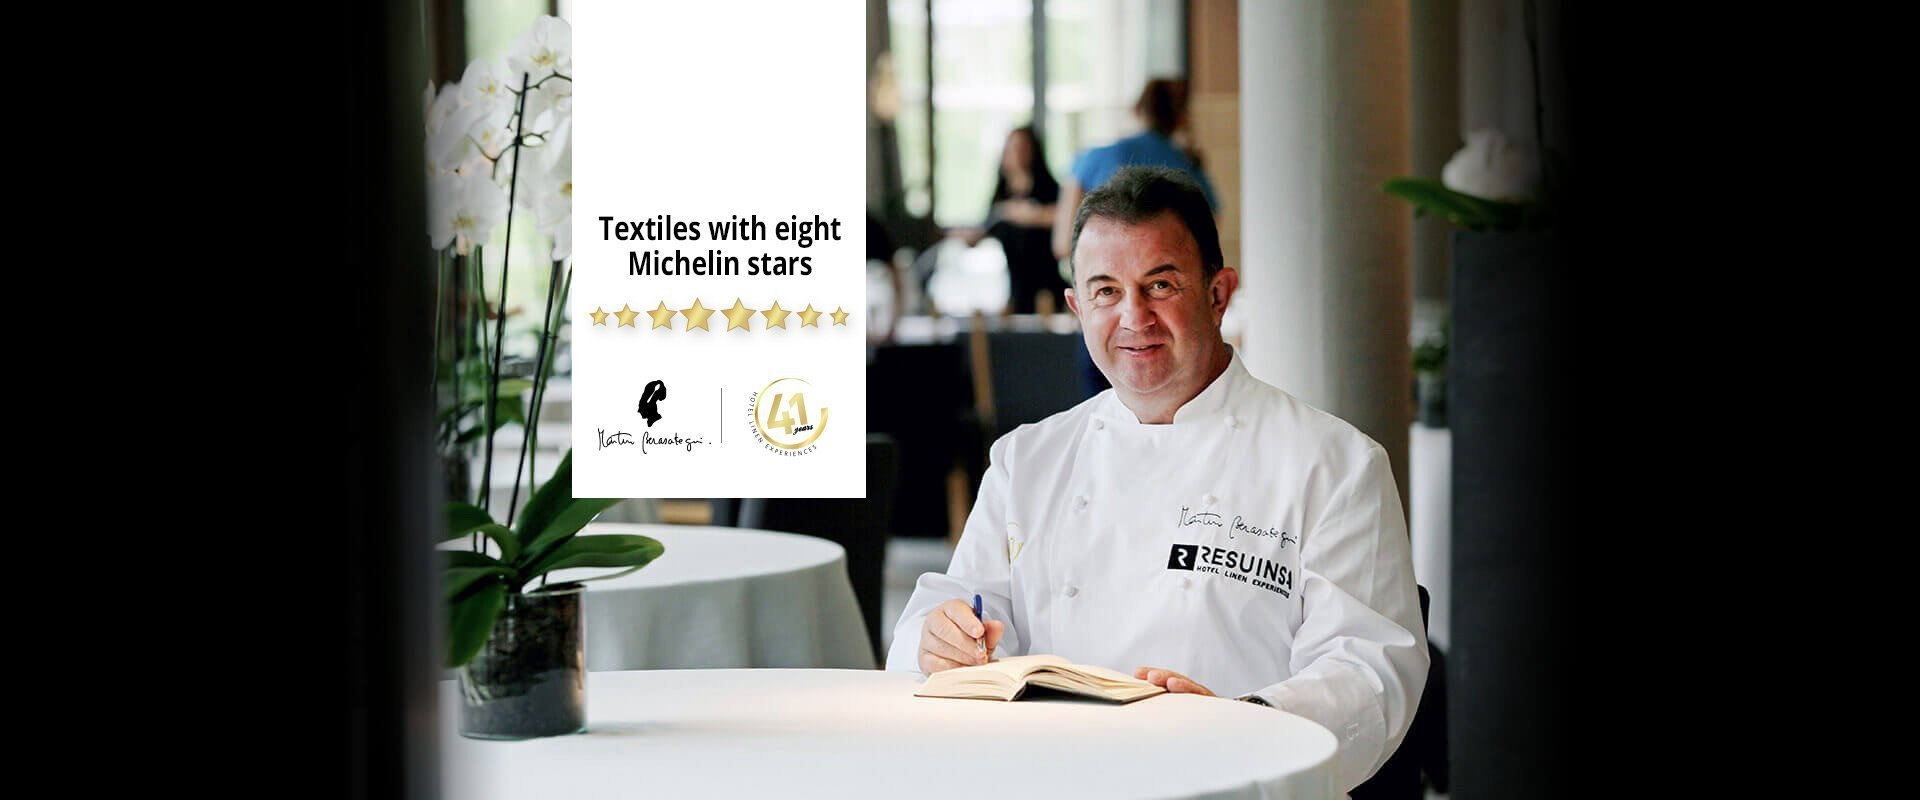 textiles-with-eight-michelin-stars-41